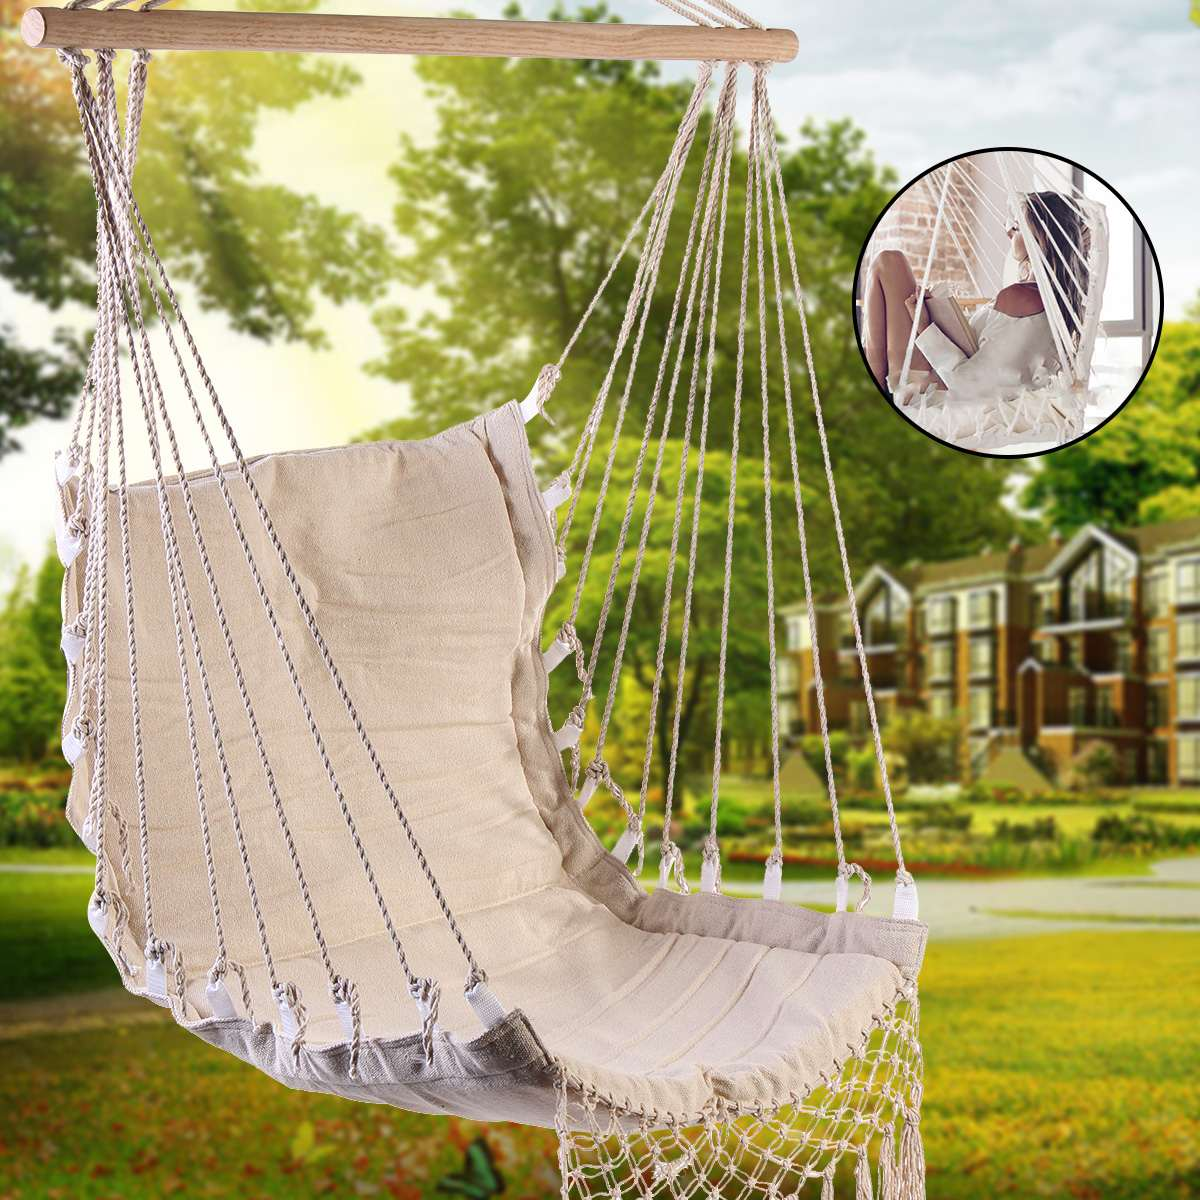 Furniture Swinging Chair Hammock Dormitory Bedroom Garden Outdoor Nordic-Style Adult title=